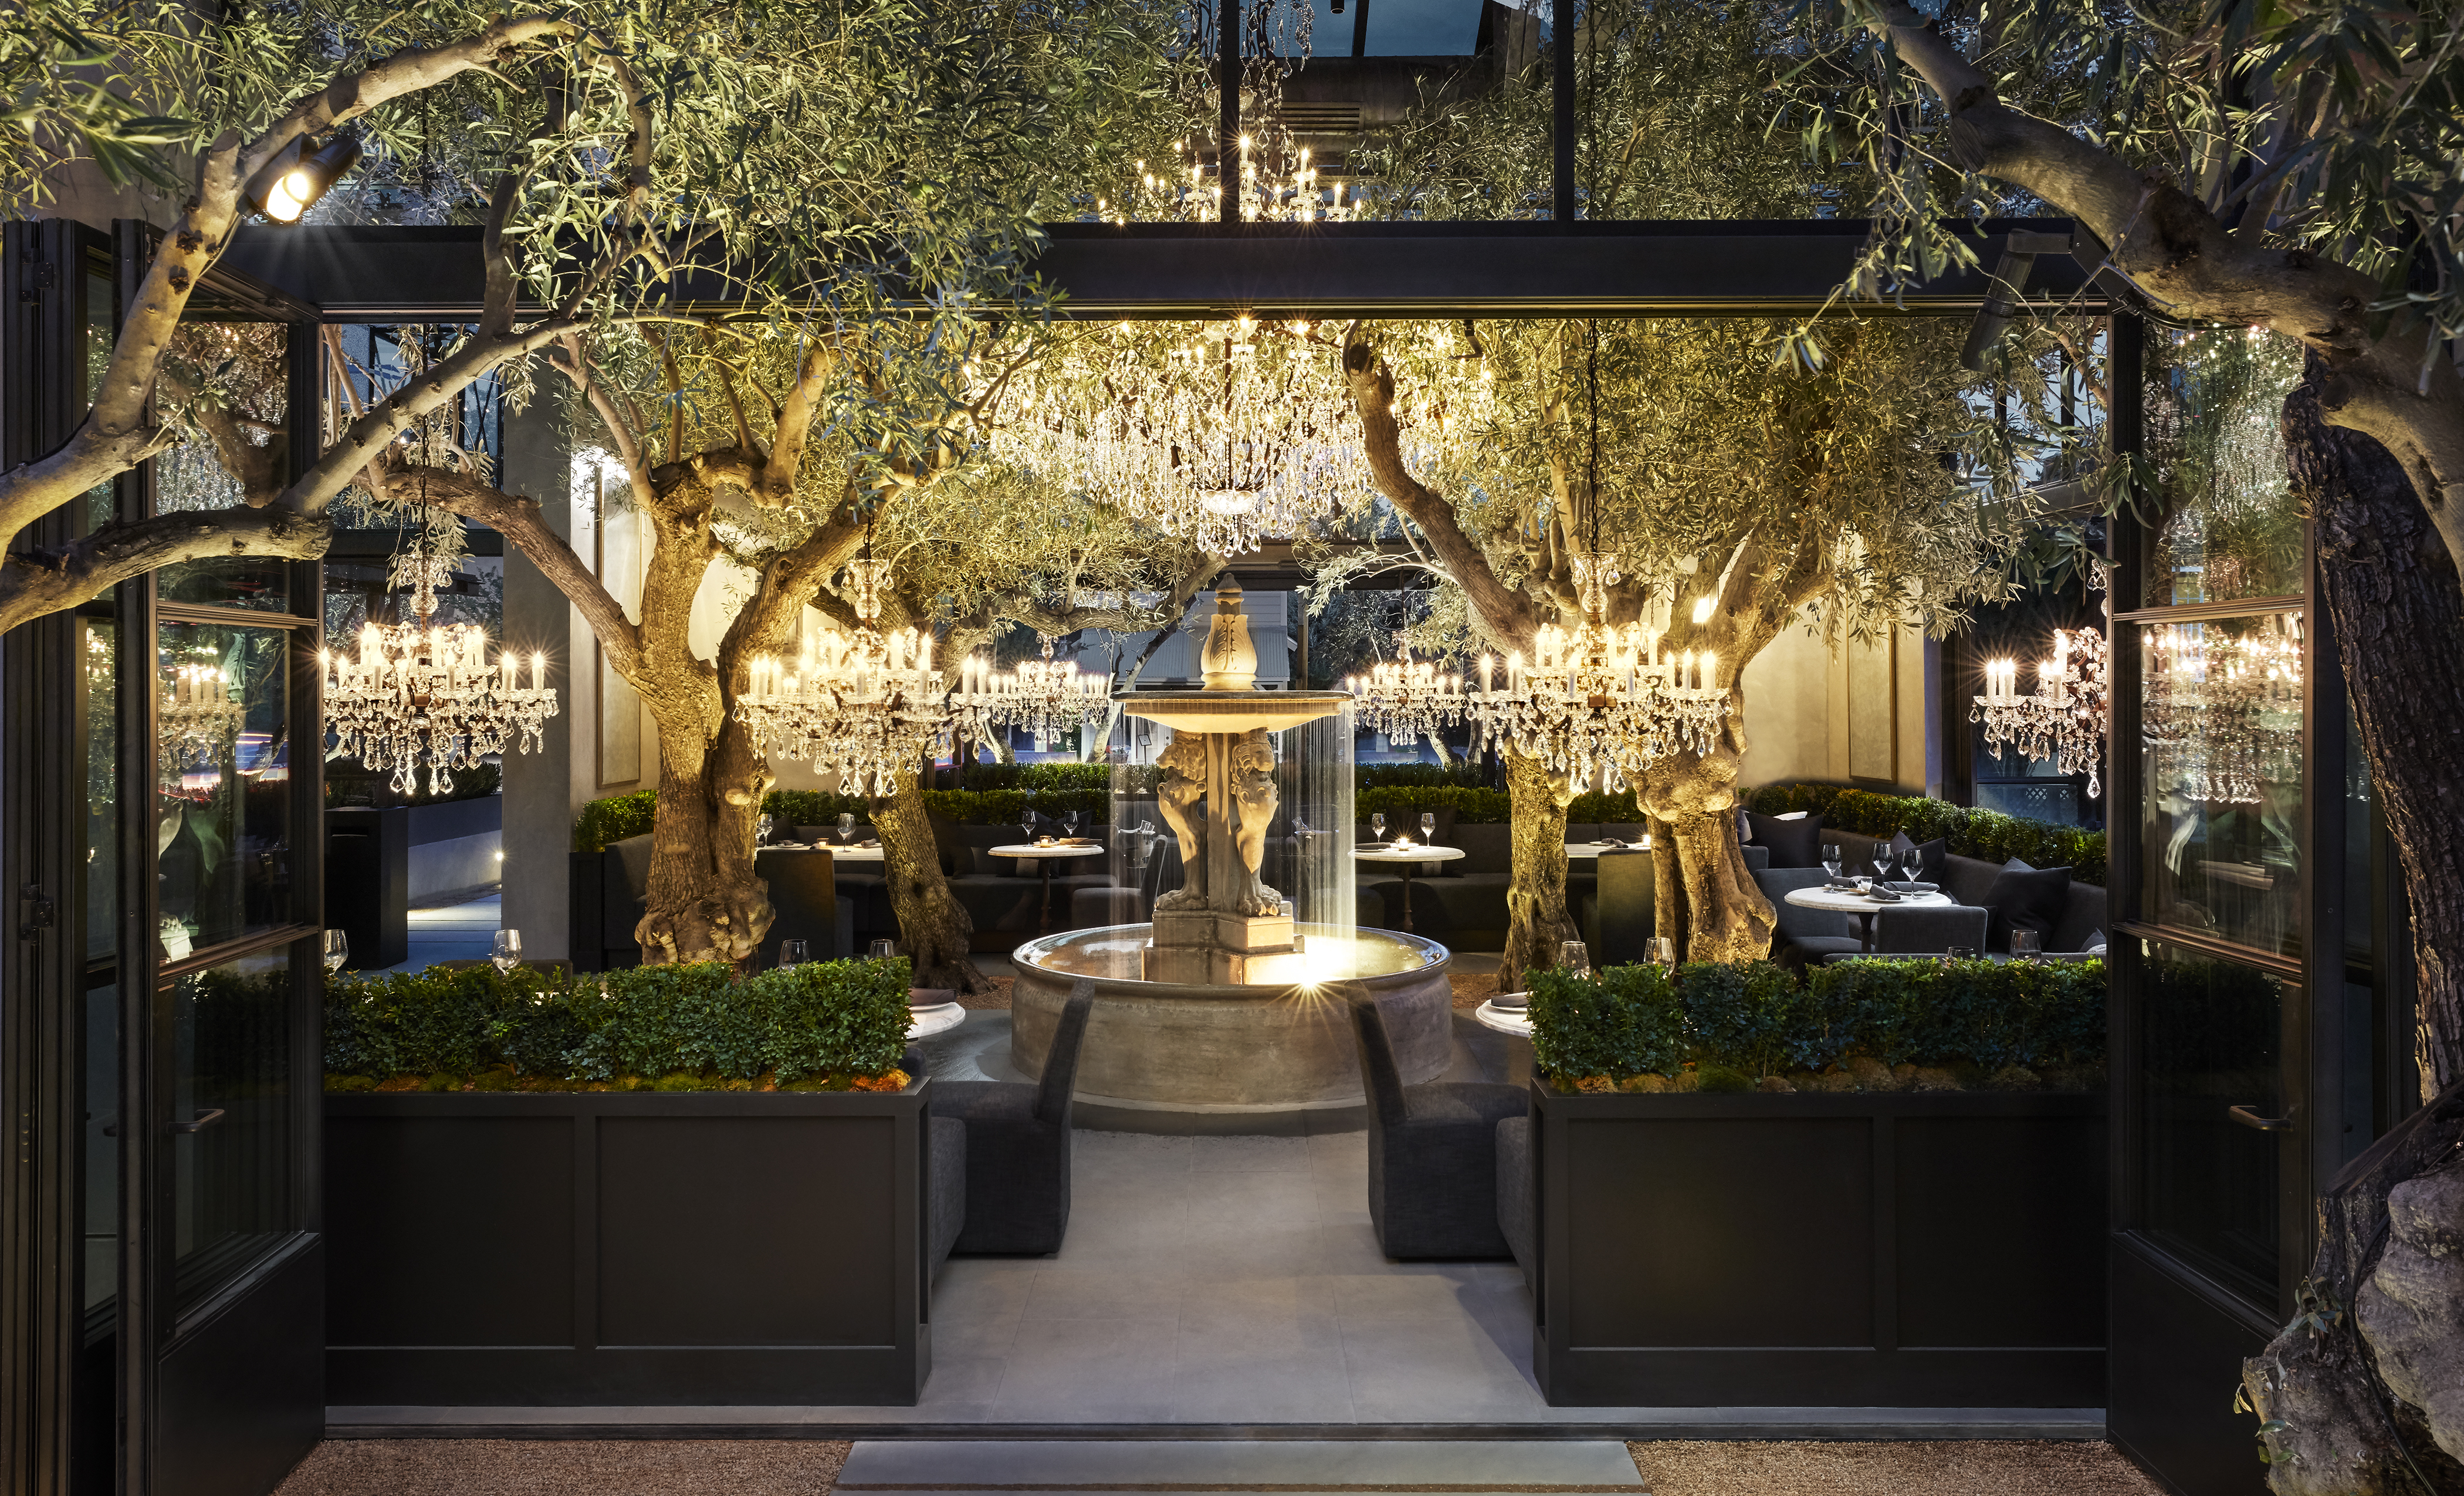 Food, Wine, Coffee, and Retail Blend at Yountville's Newest Luxury Destination